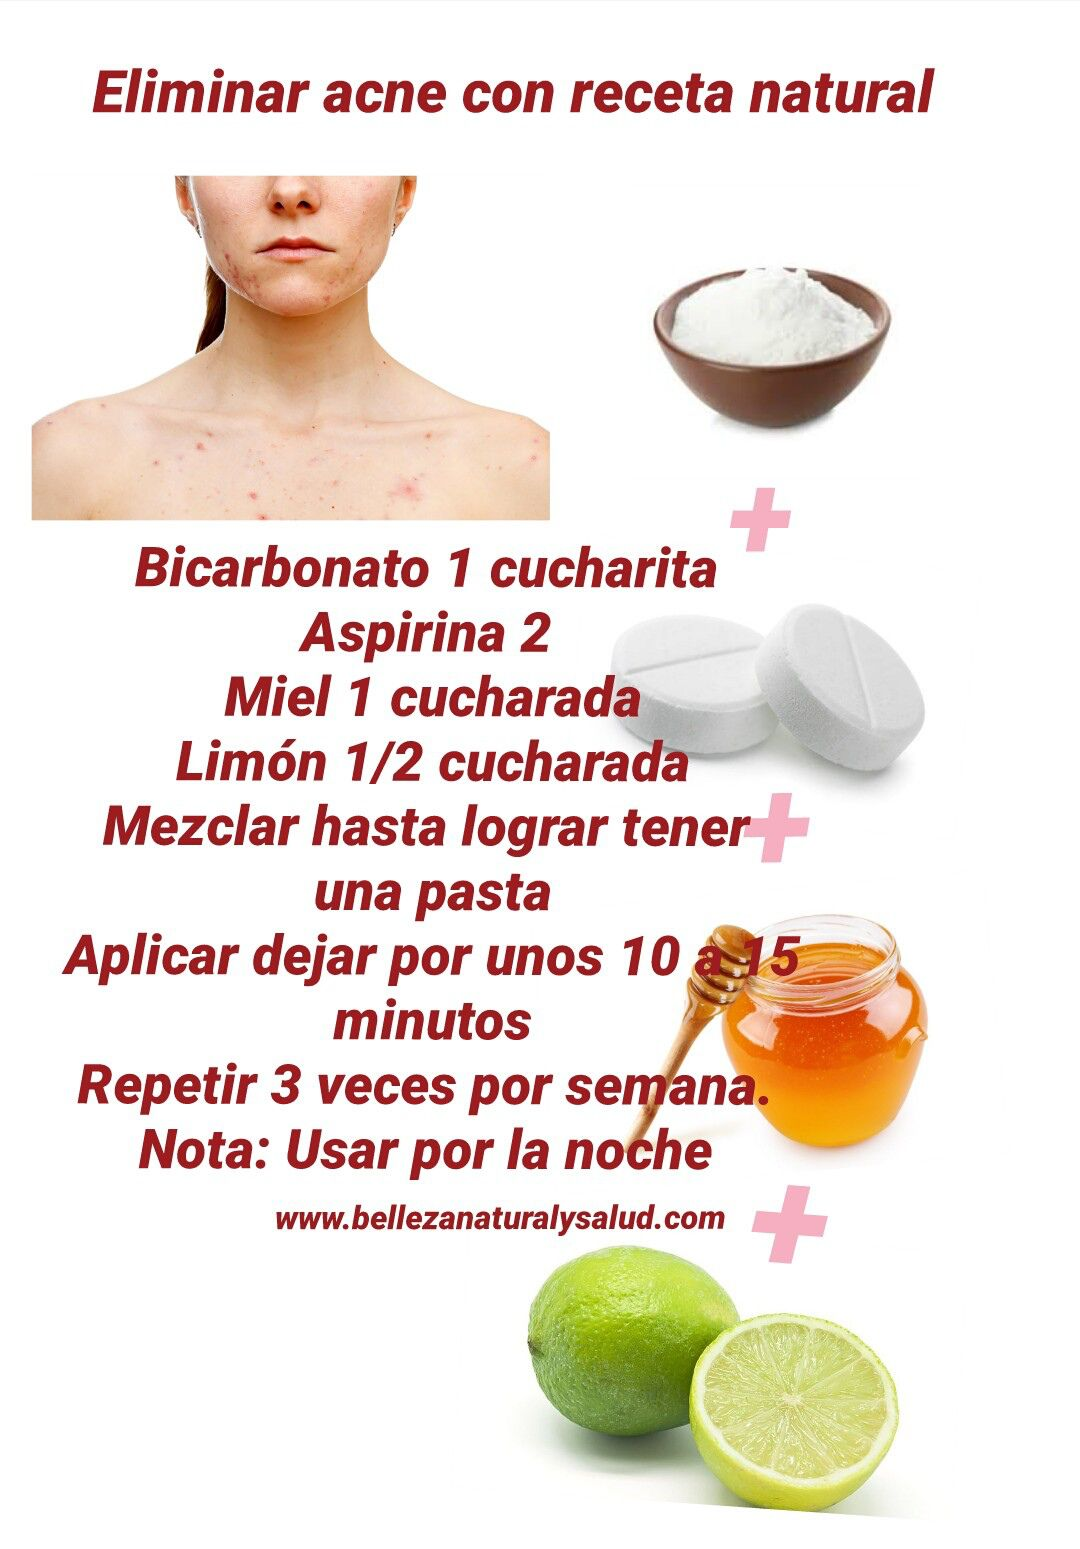 Eliminar acne receta natural